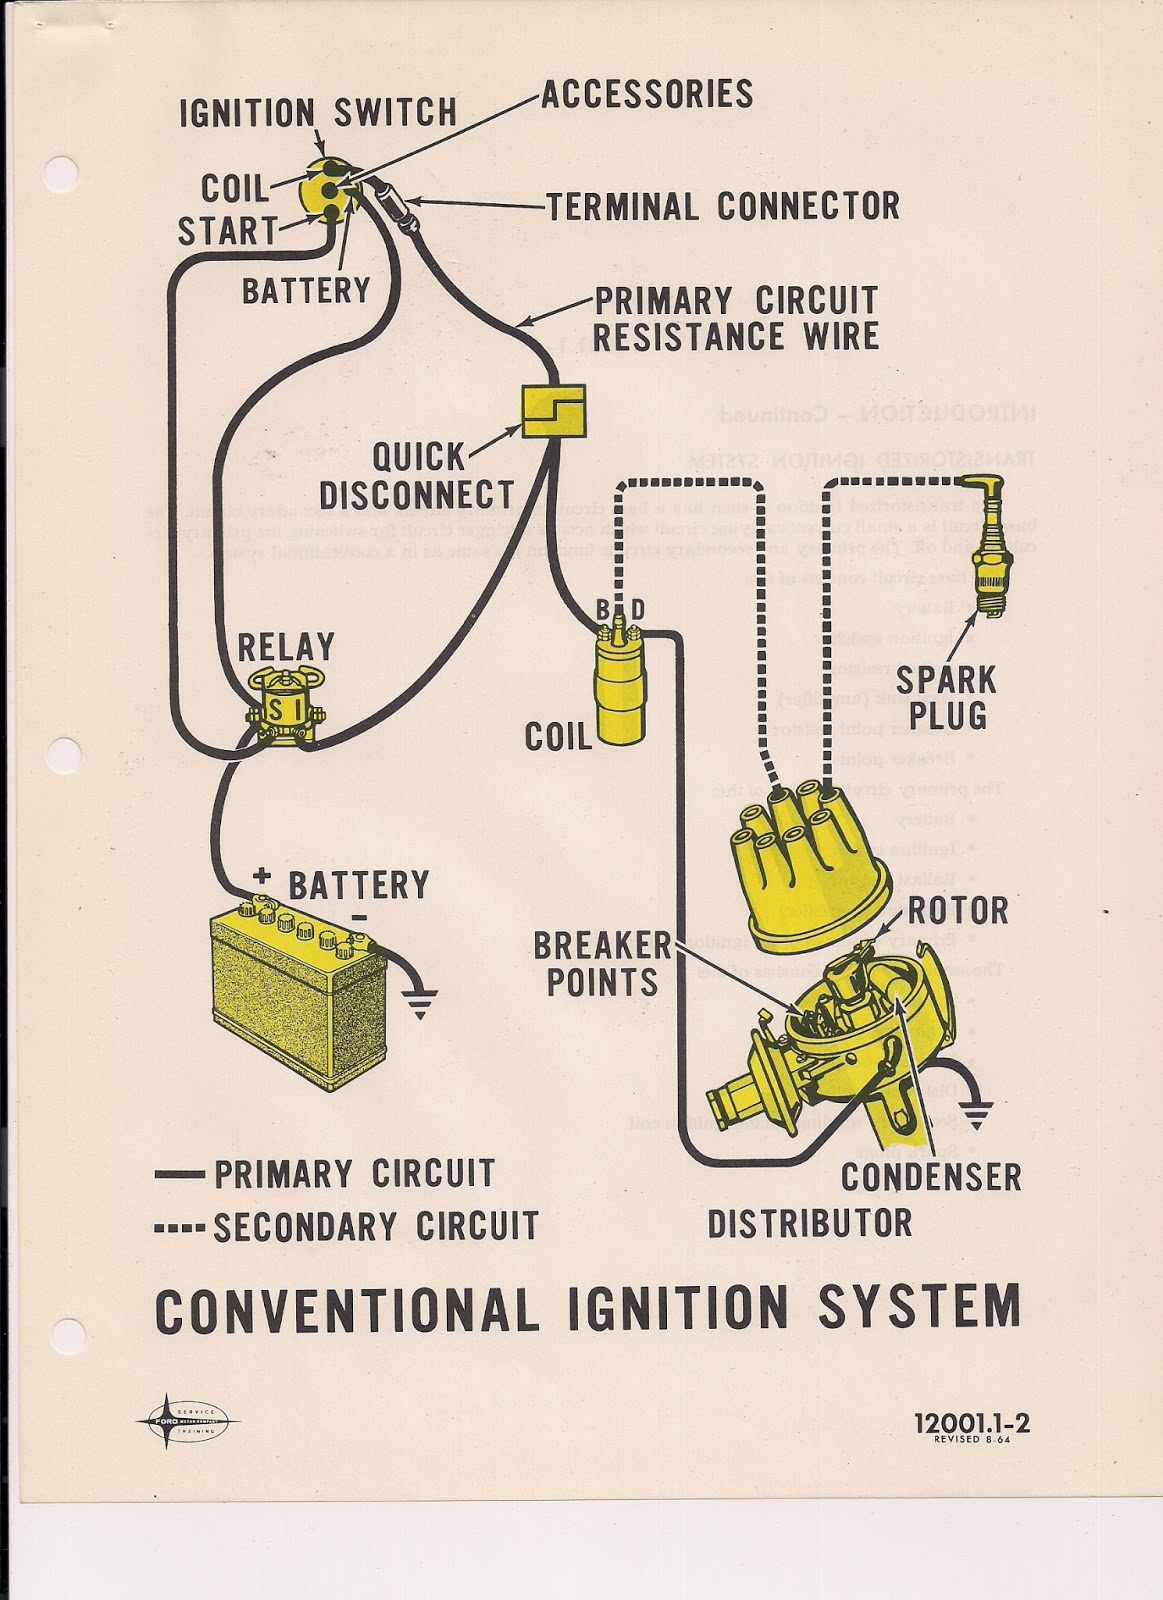 1965 Mustang Ignition Coil Wiring Diagram Short Story Plot Terms 1967 1957 Ford